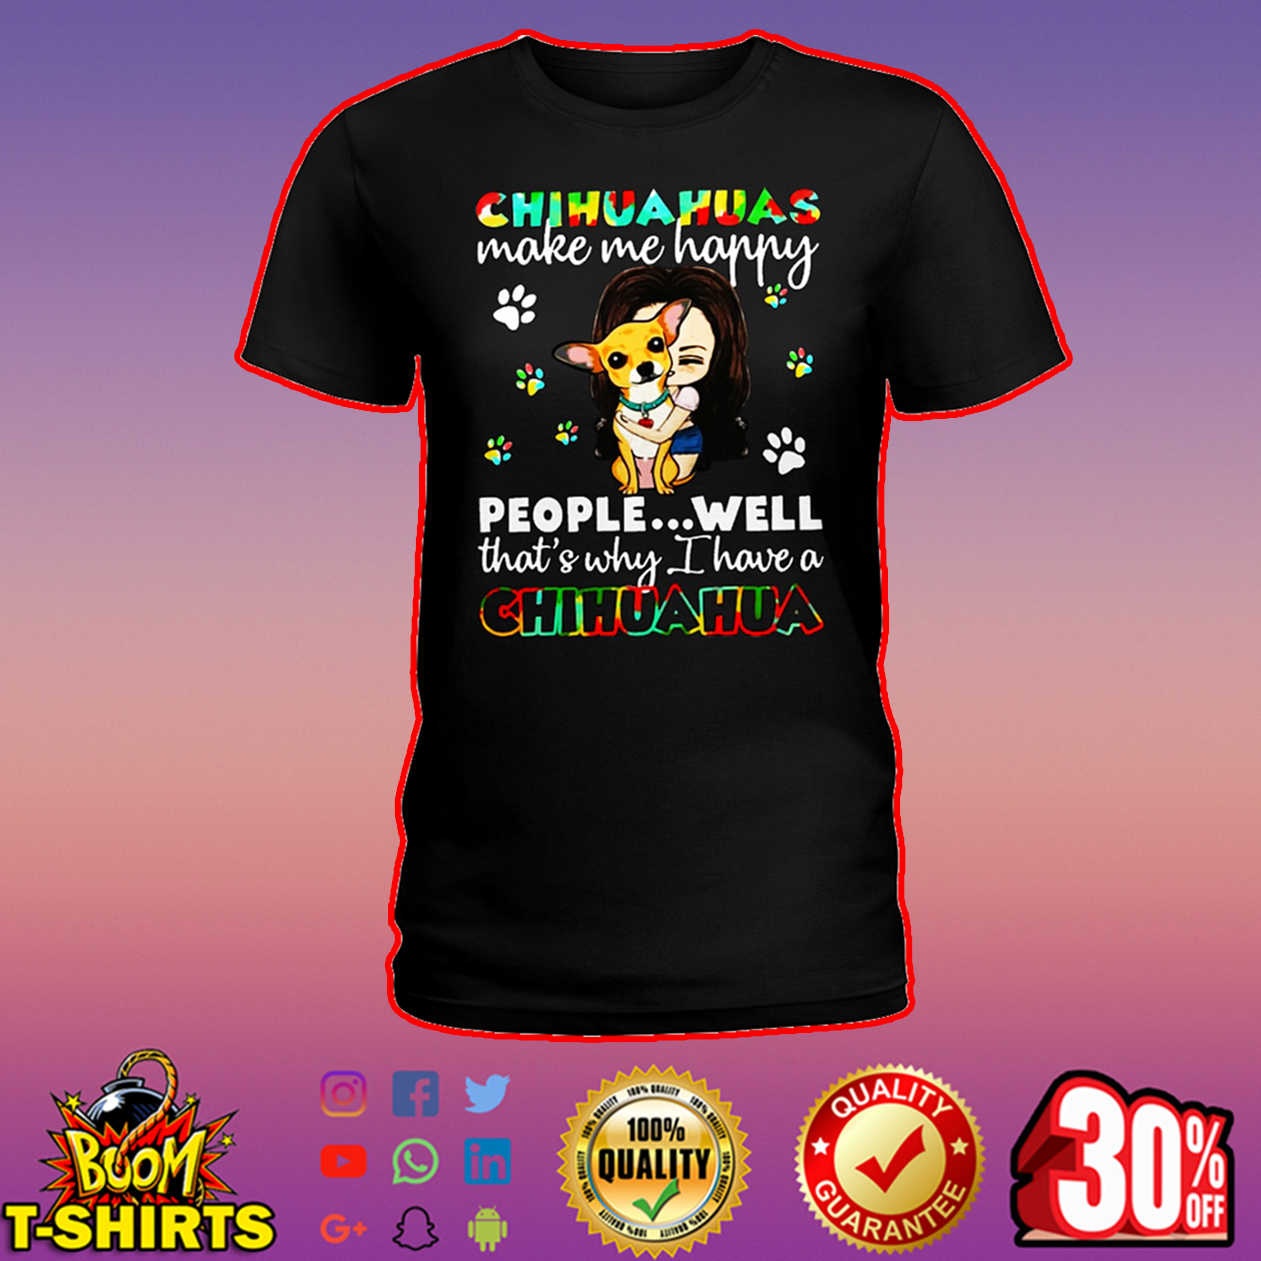 Chihuahuas make me happy people well that's why I have a Chihuahua shirt